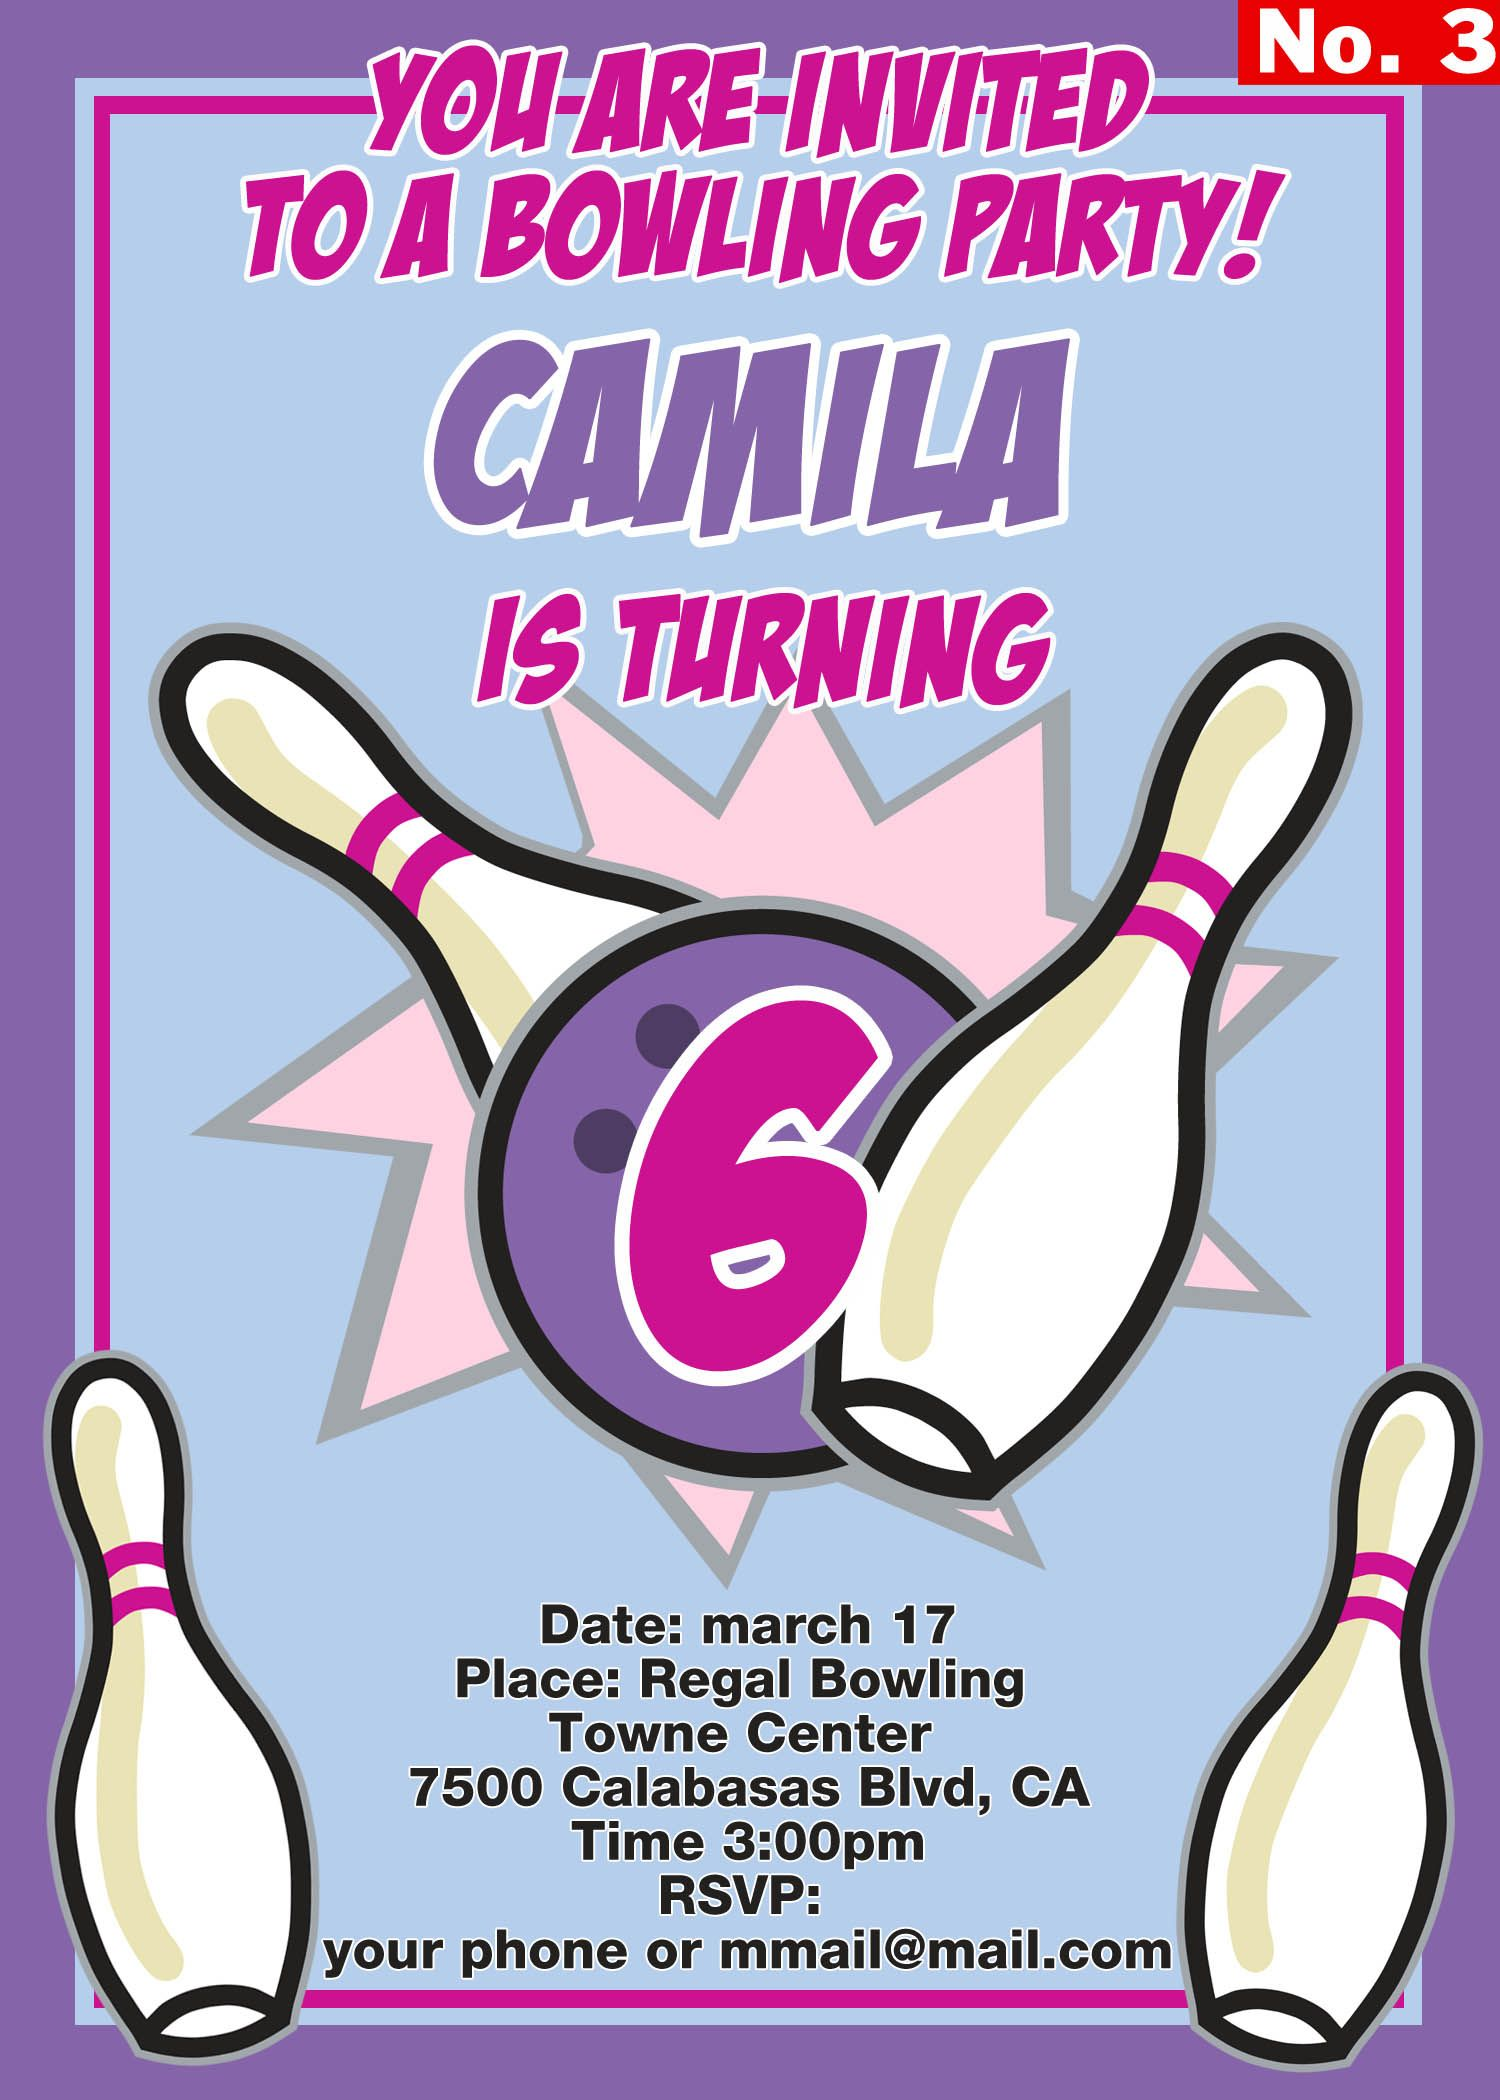 Bowling birthday party invitation for girls. Purple and pink colors ...